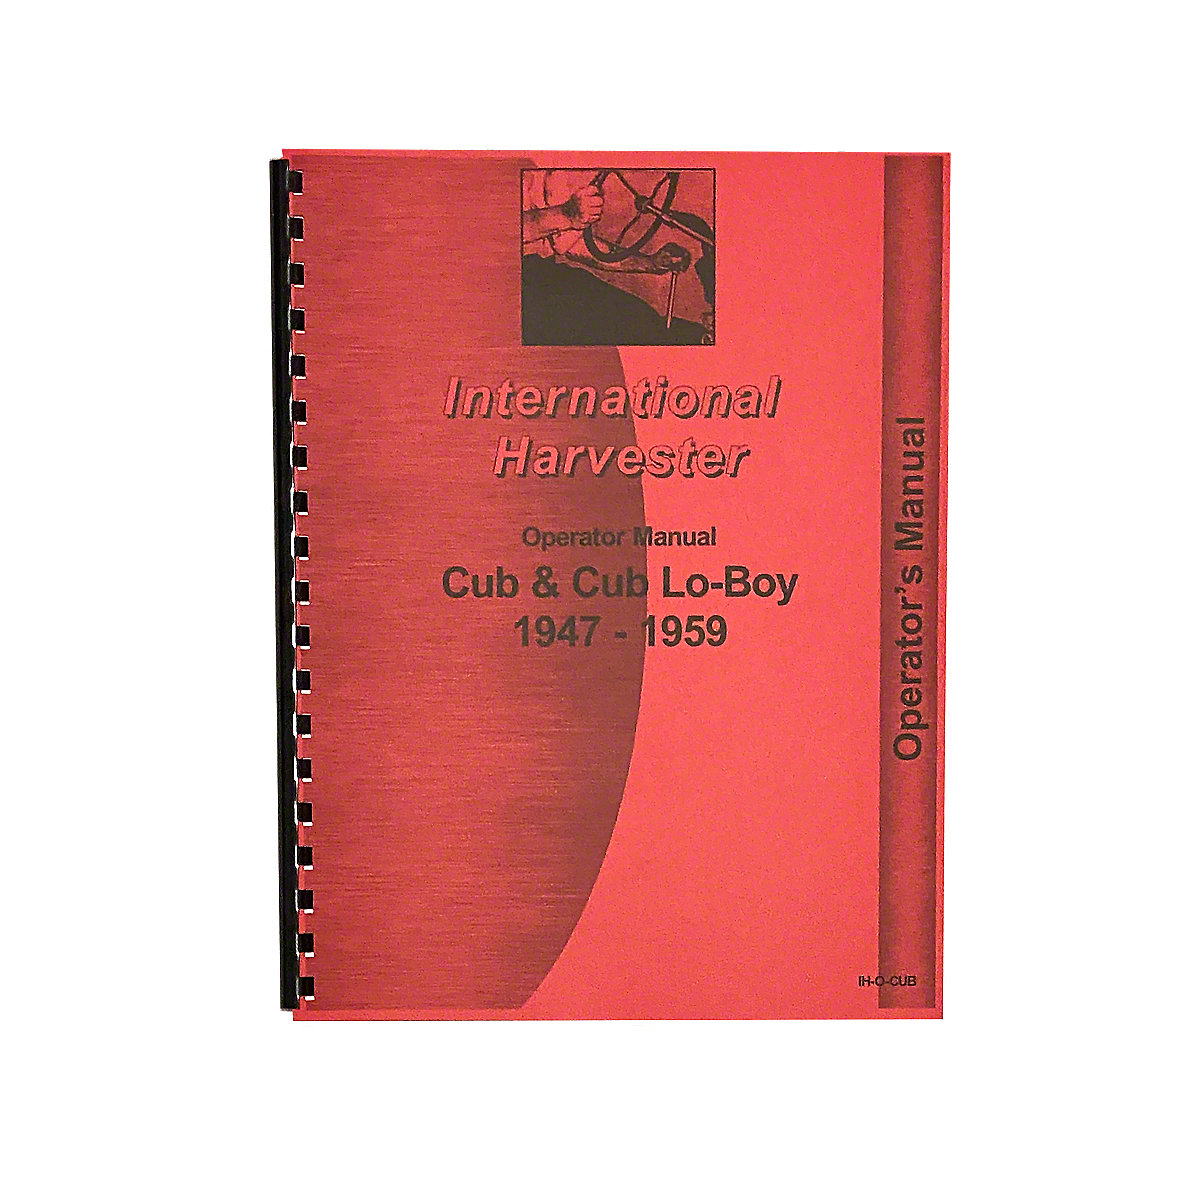 Farmall Cub Diagram Electrical Schematics Atb Motor Wiring Rep081 Operators Manual Firing Order